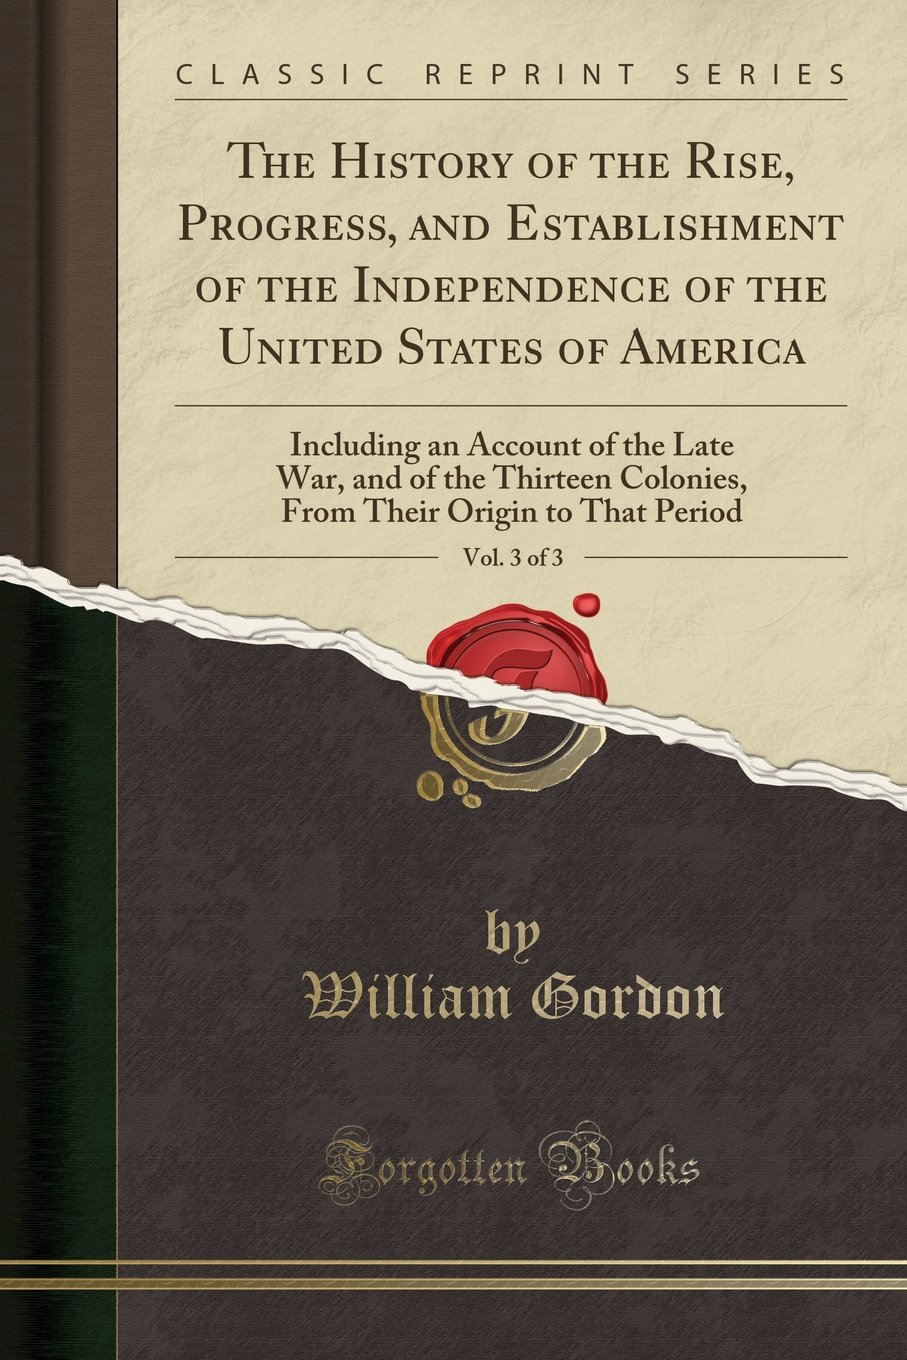 The History of the Rise, Progress, and Establishment of the Independence of the United States of America, Vol. 3 of 3: Including an Account of the ... Their Origin to That Period (Classic Reprint) ebook